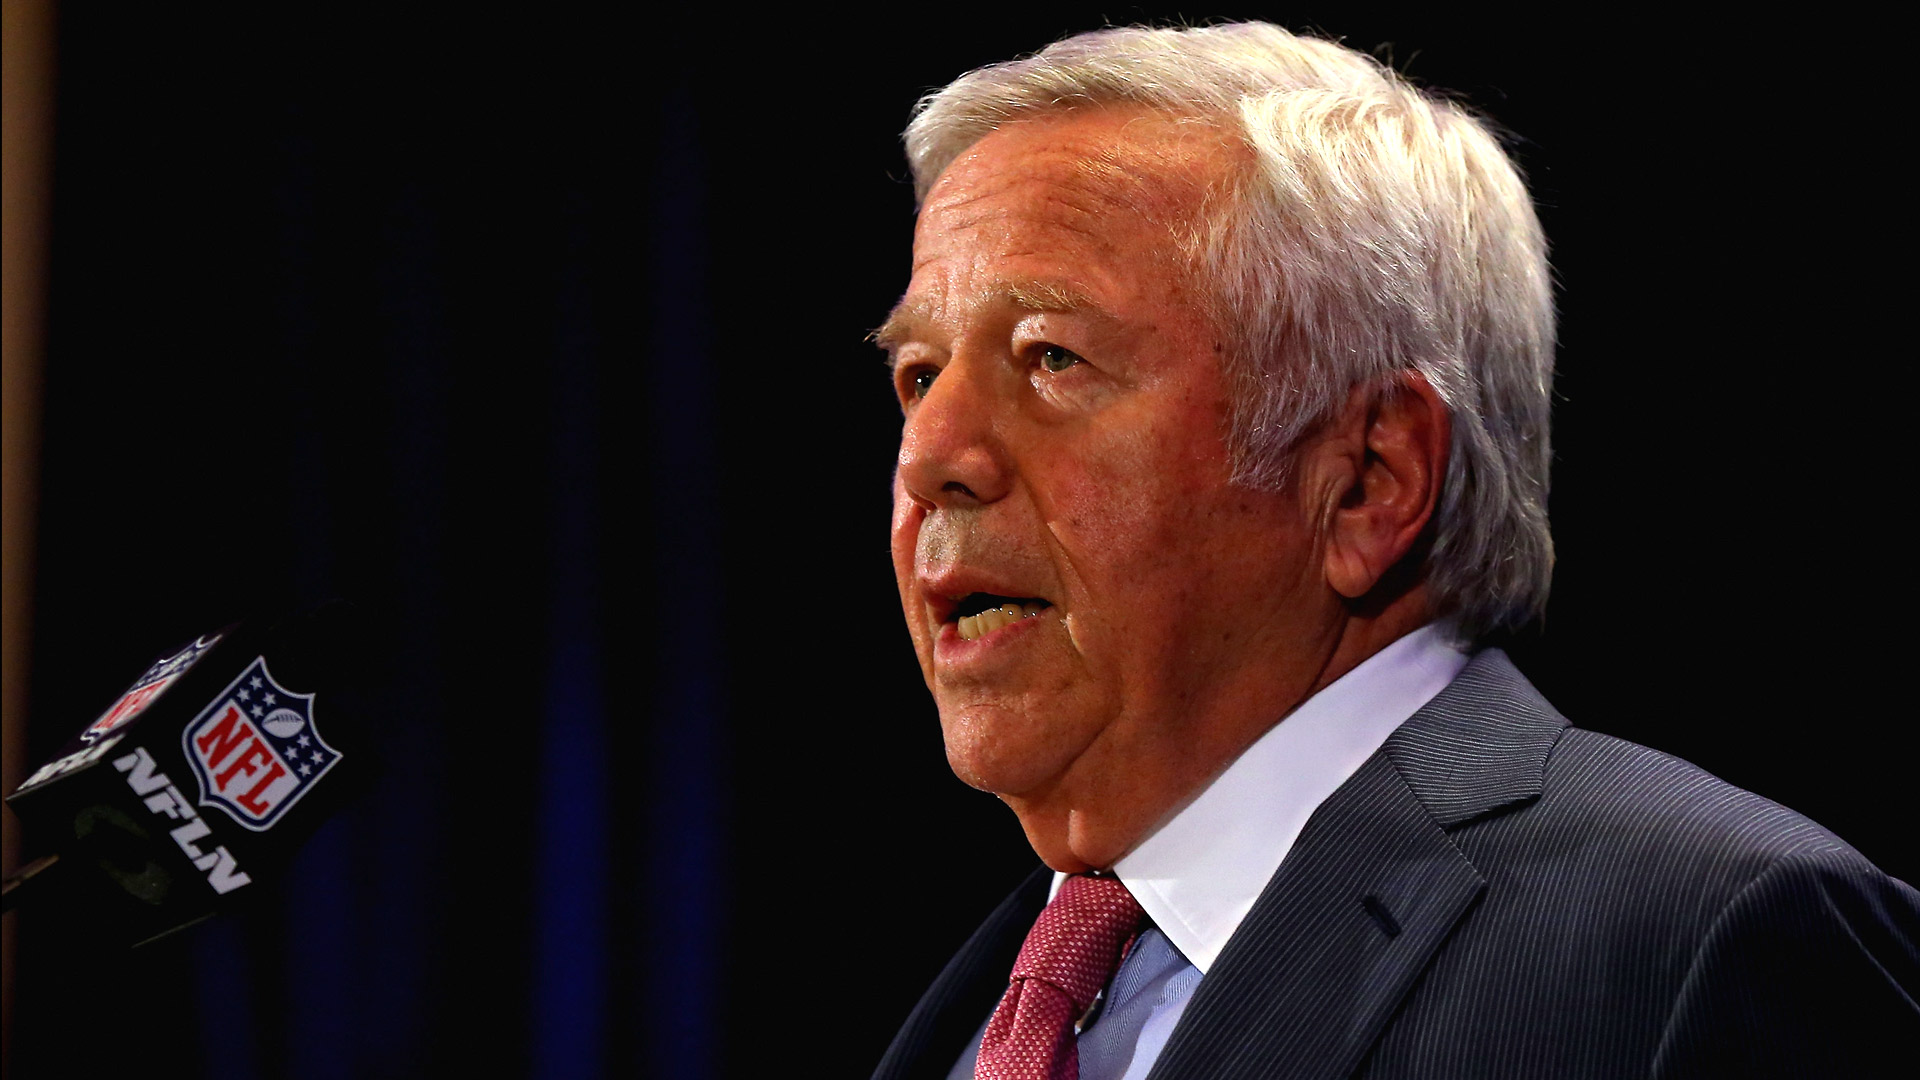 Robert Kraft bashes NFL, was 'wrong to put faith in the league'